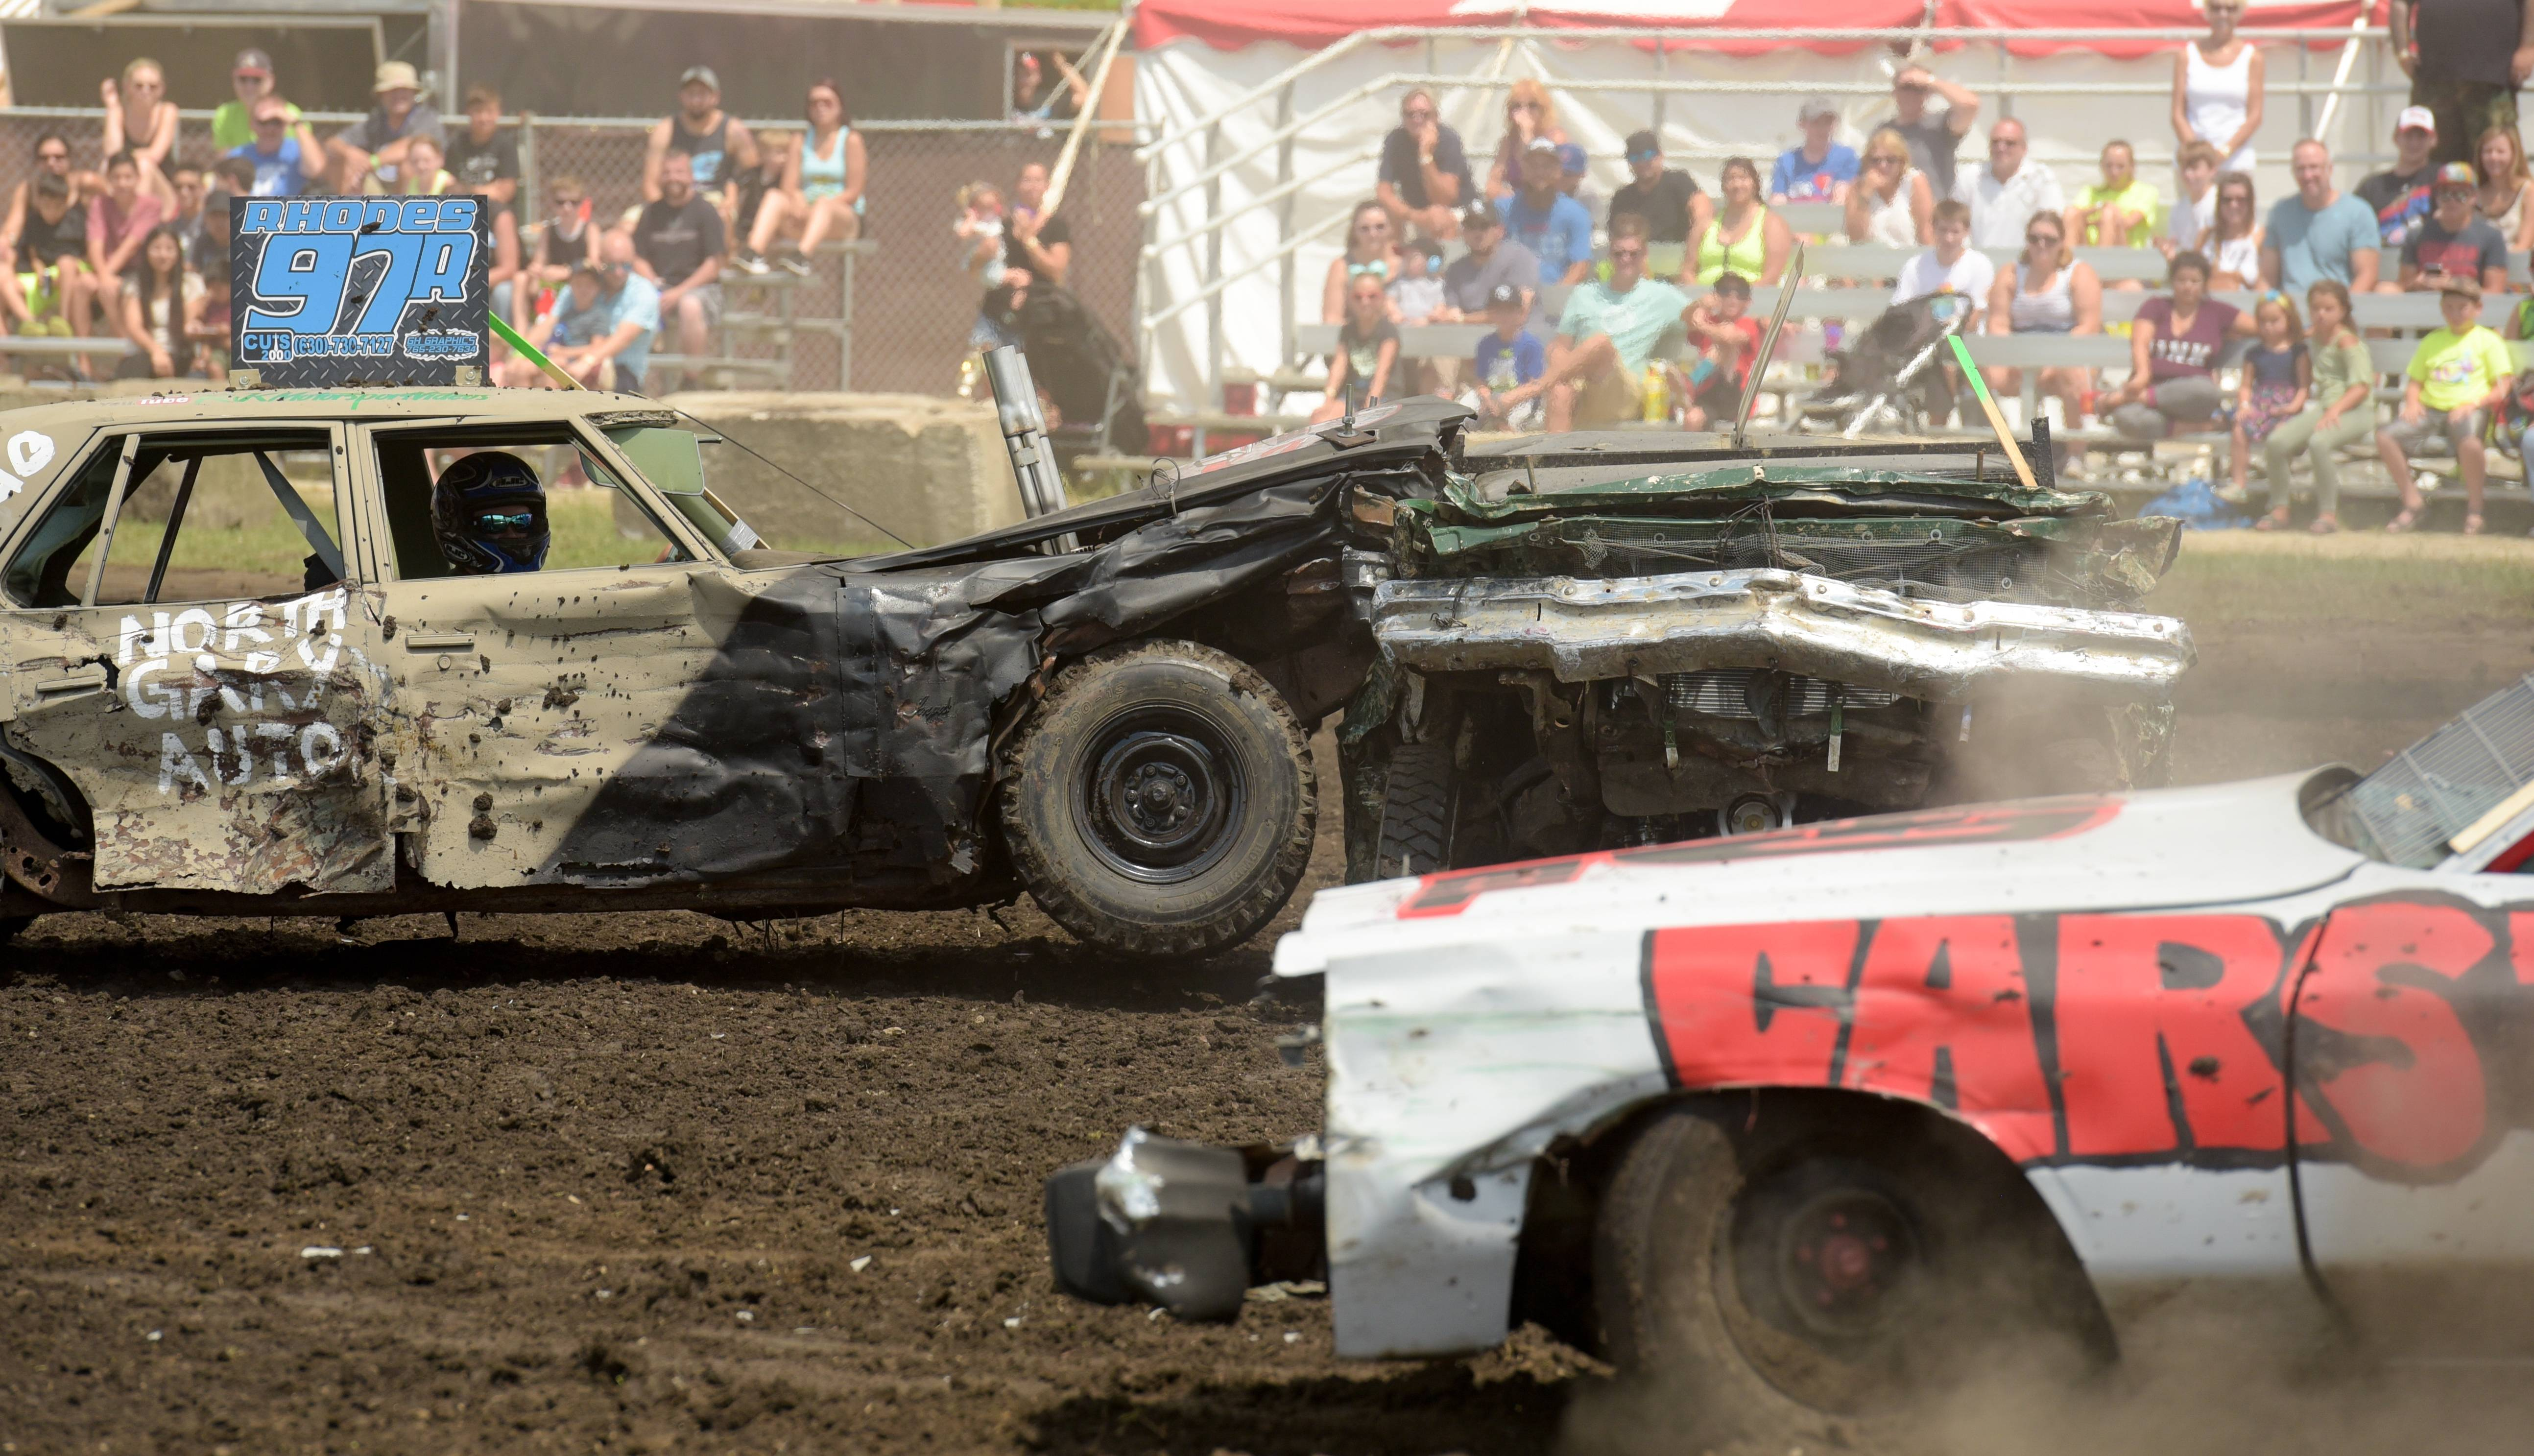 Adkin Rhodes of St. Charles inflicts some damage to Erik Johnson of Melrose Park during the demolition derby at the DuPage County Fair on Sunday. Rhodes survived the heat and moved on to the finals.